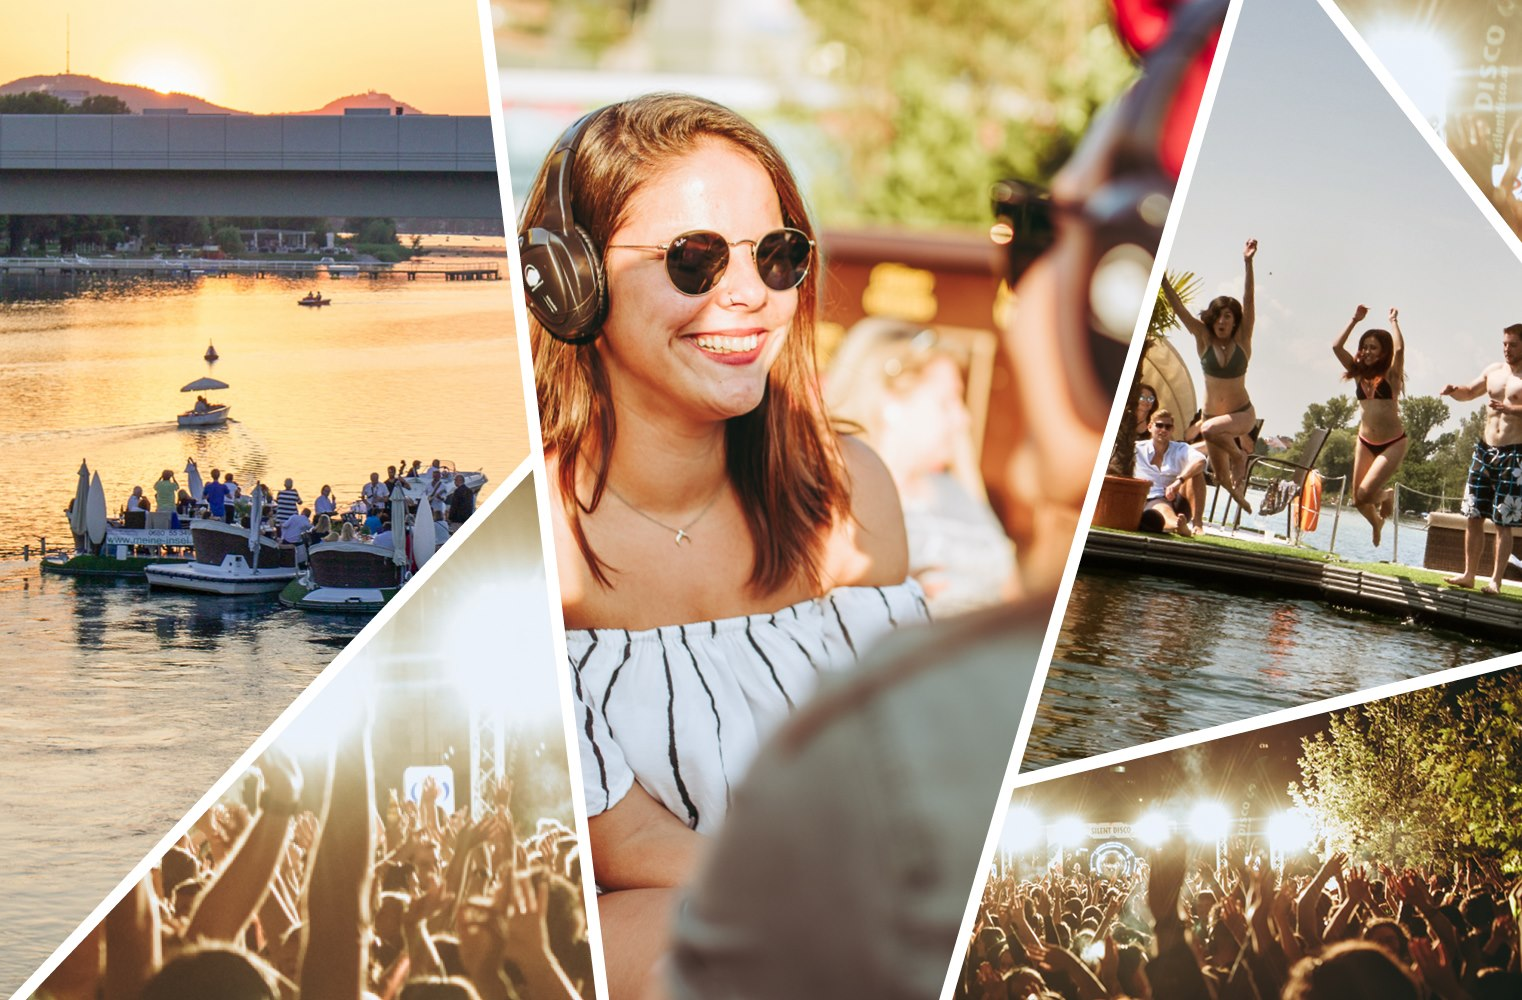 Events Wien: Silent Disco x Meine Insel hosted by Jollydays